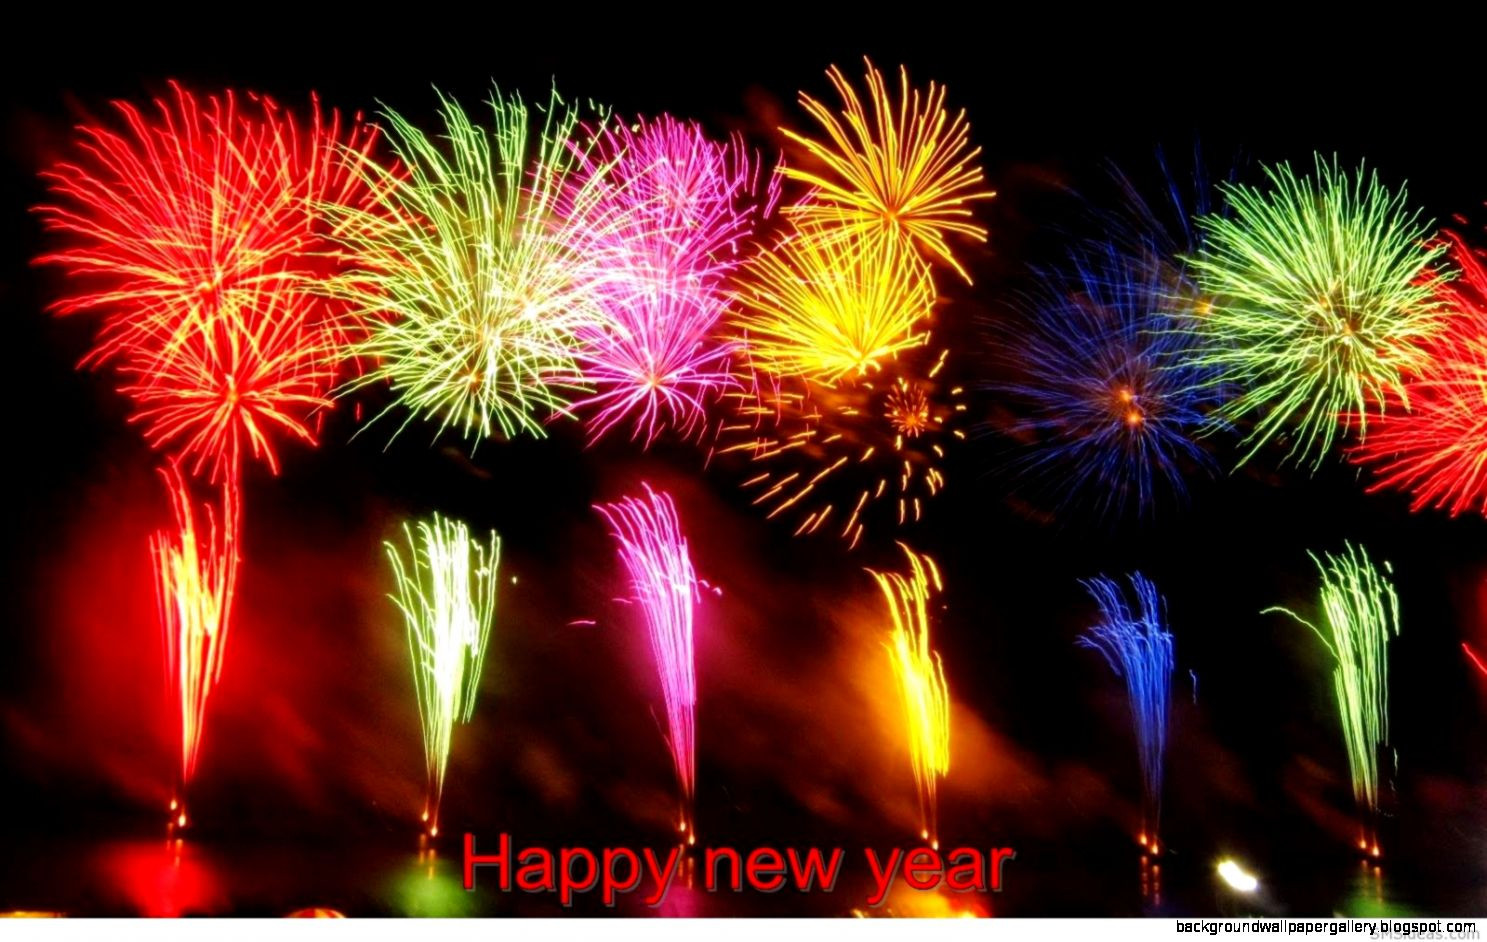 view original size happy new year 2015 wallpapers images